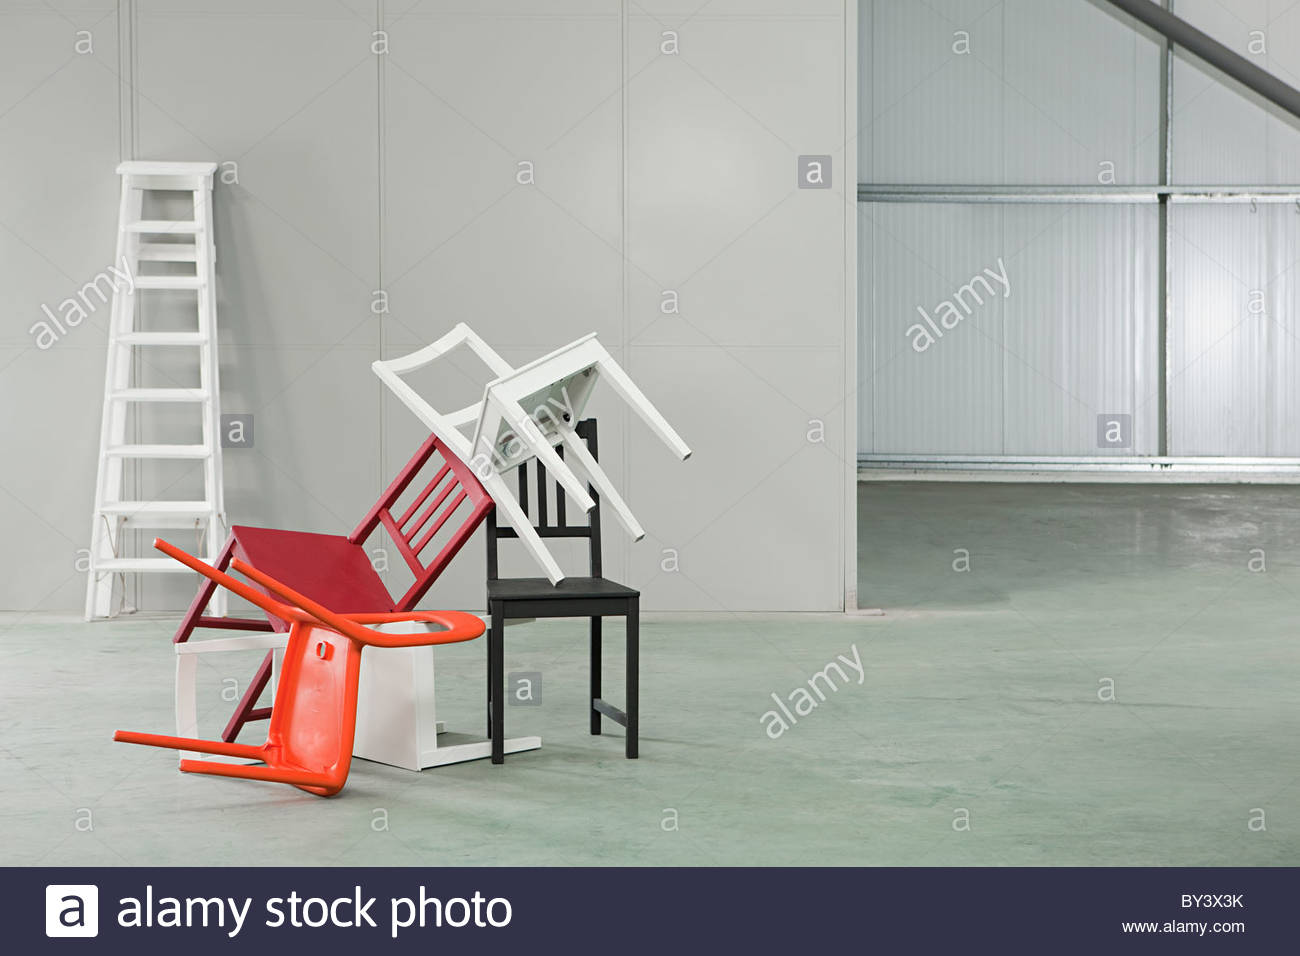 Five chairs piled on top of each other Stock Photo